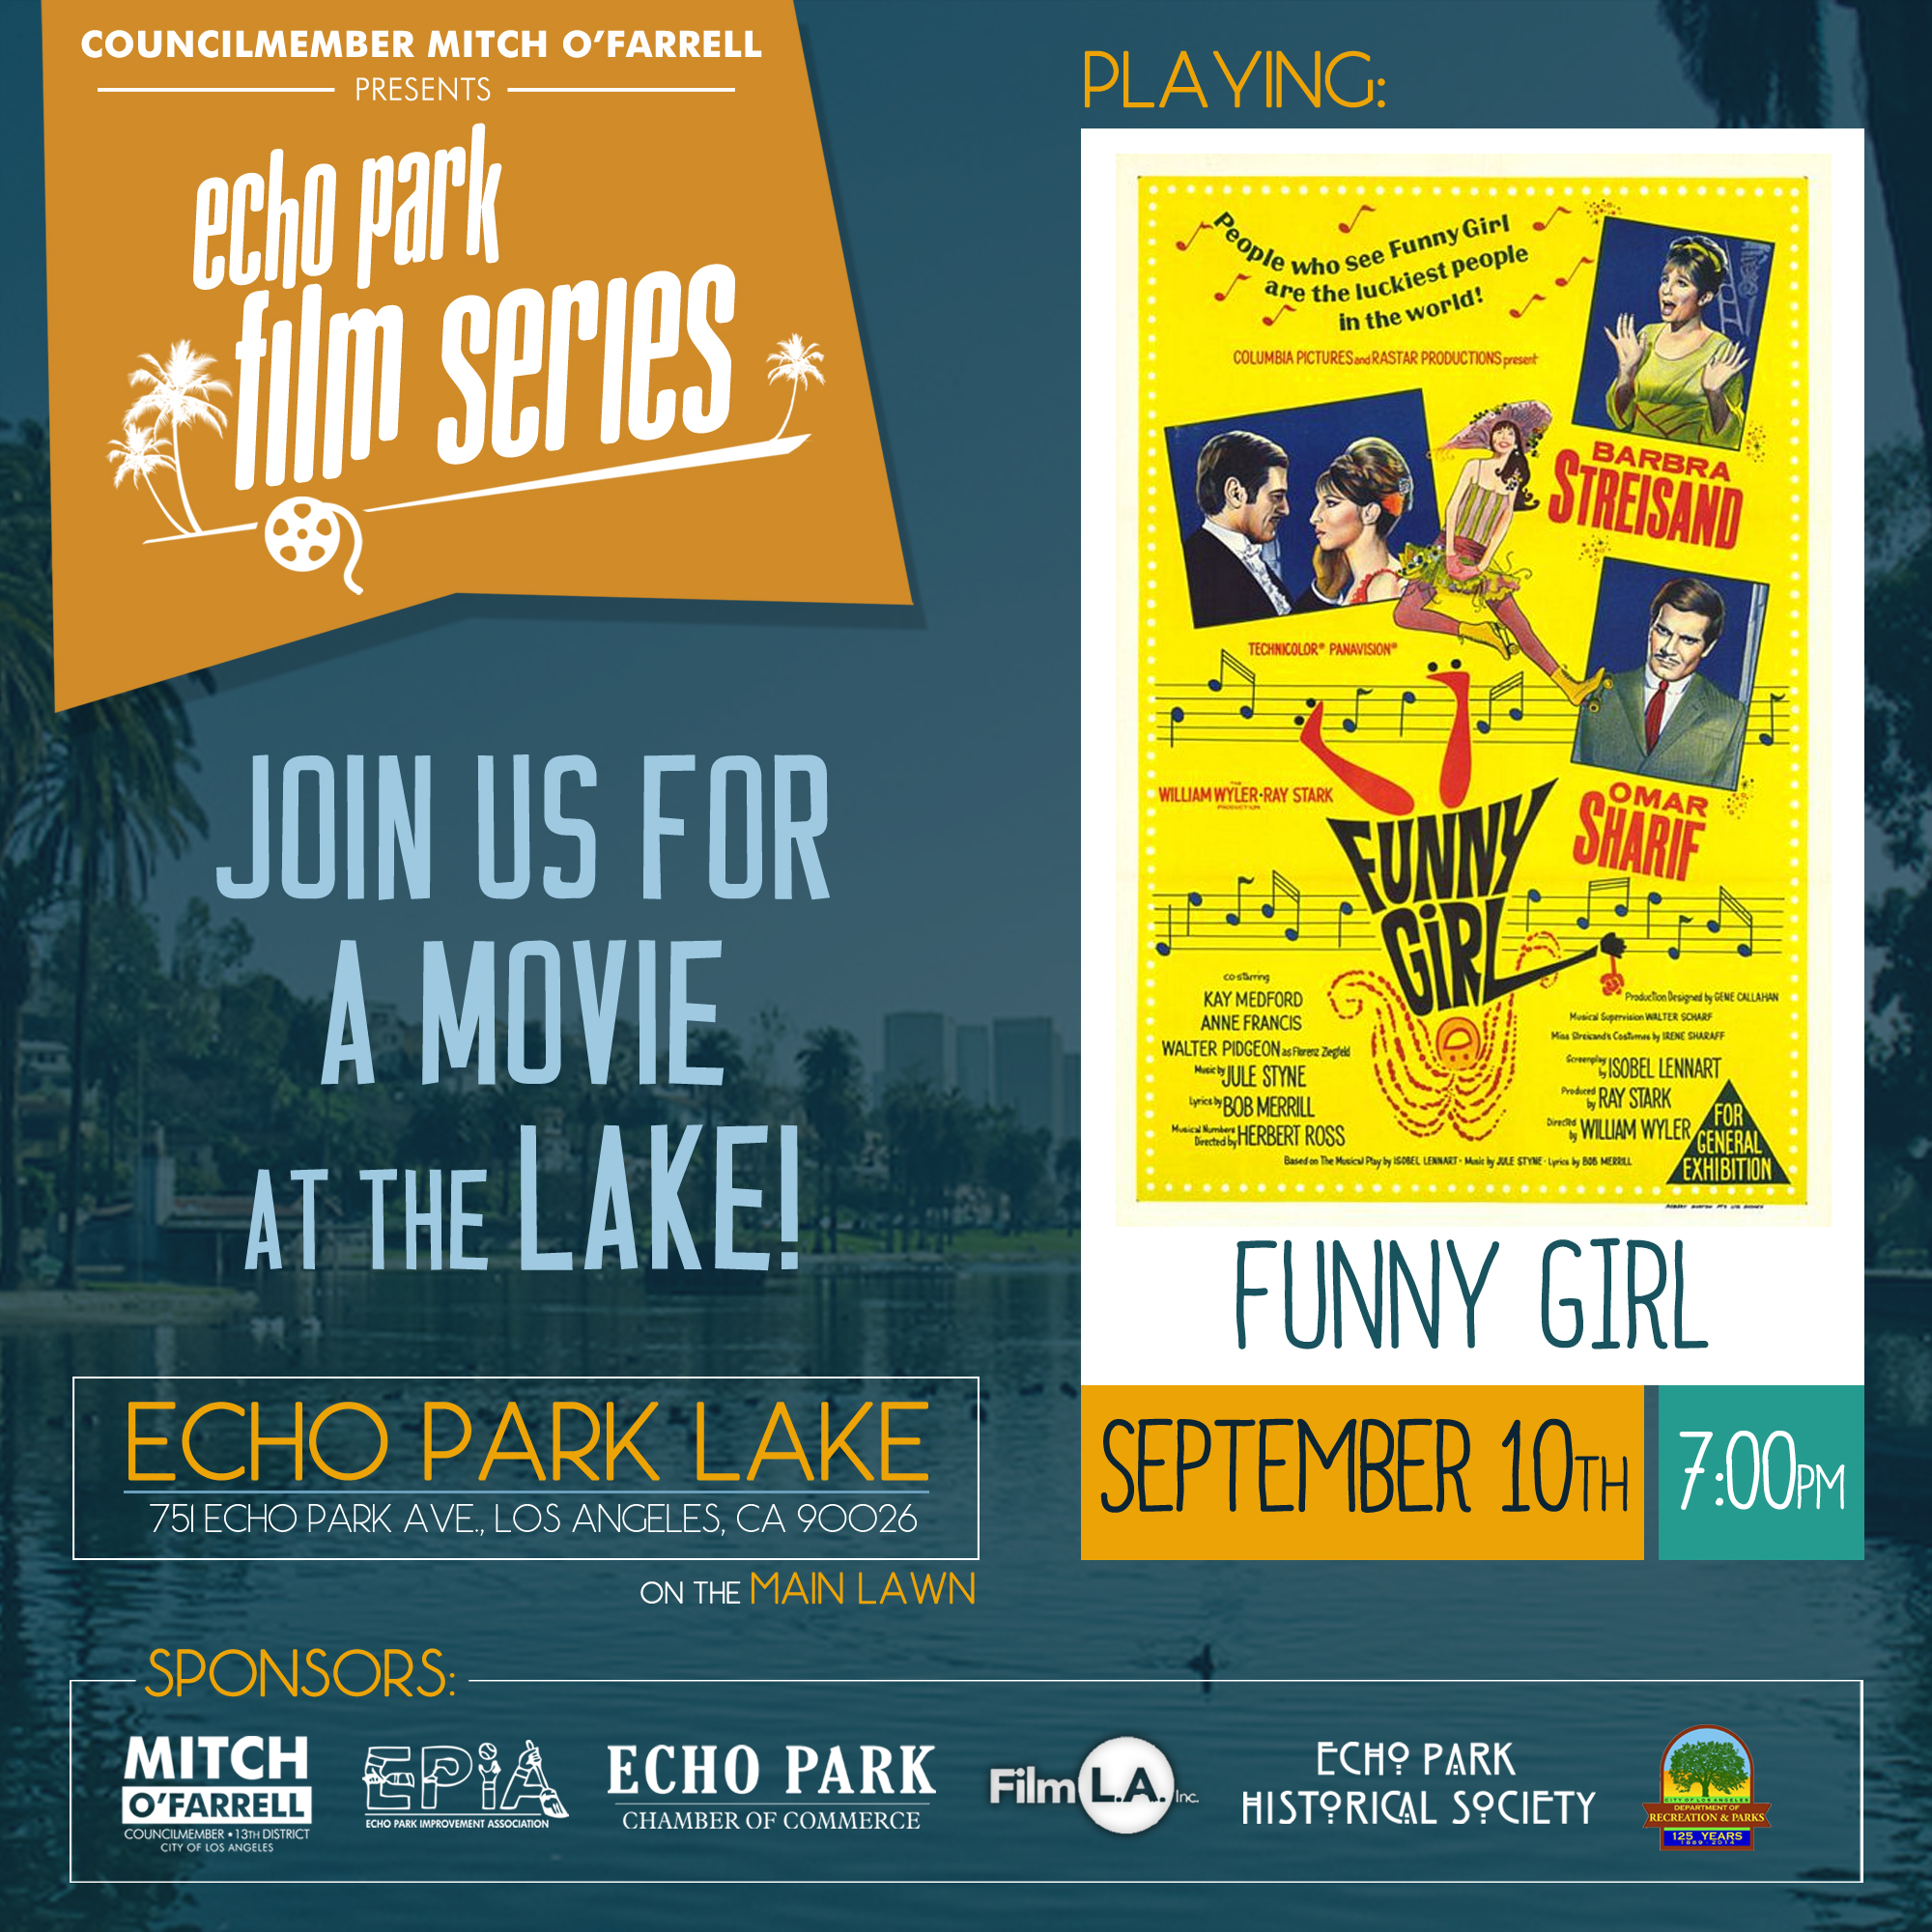 Echo_Park_Film_Series_-_Funny_Girl_(Social_Media).jpg